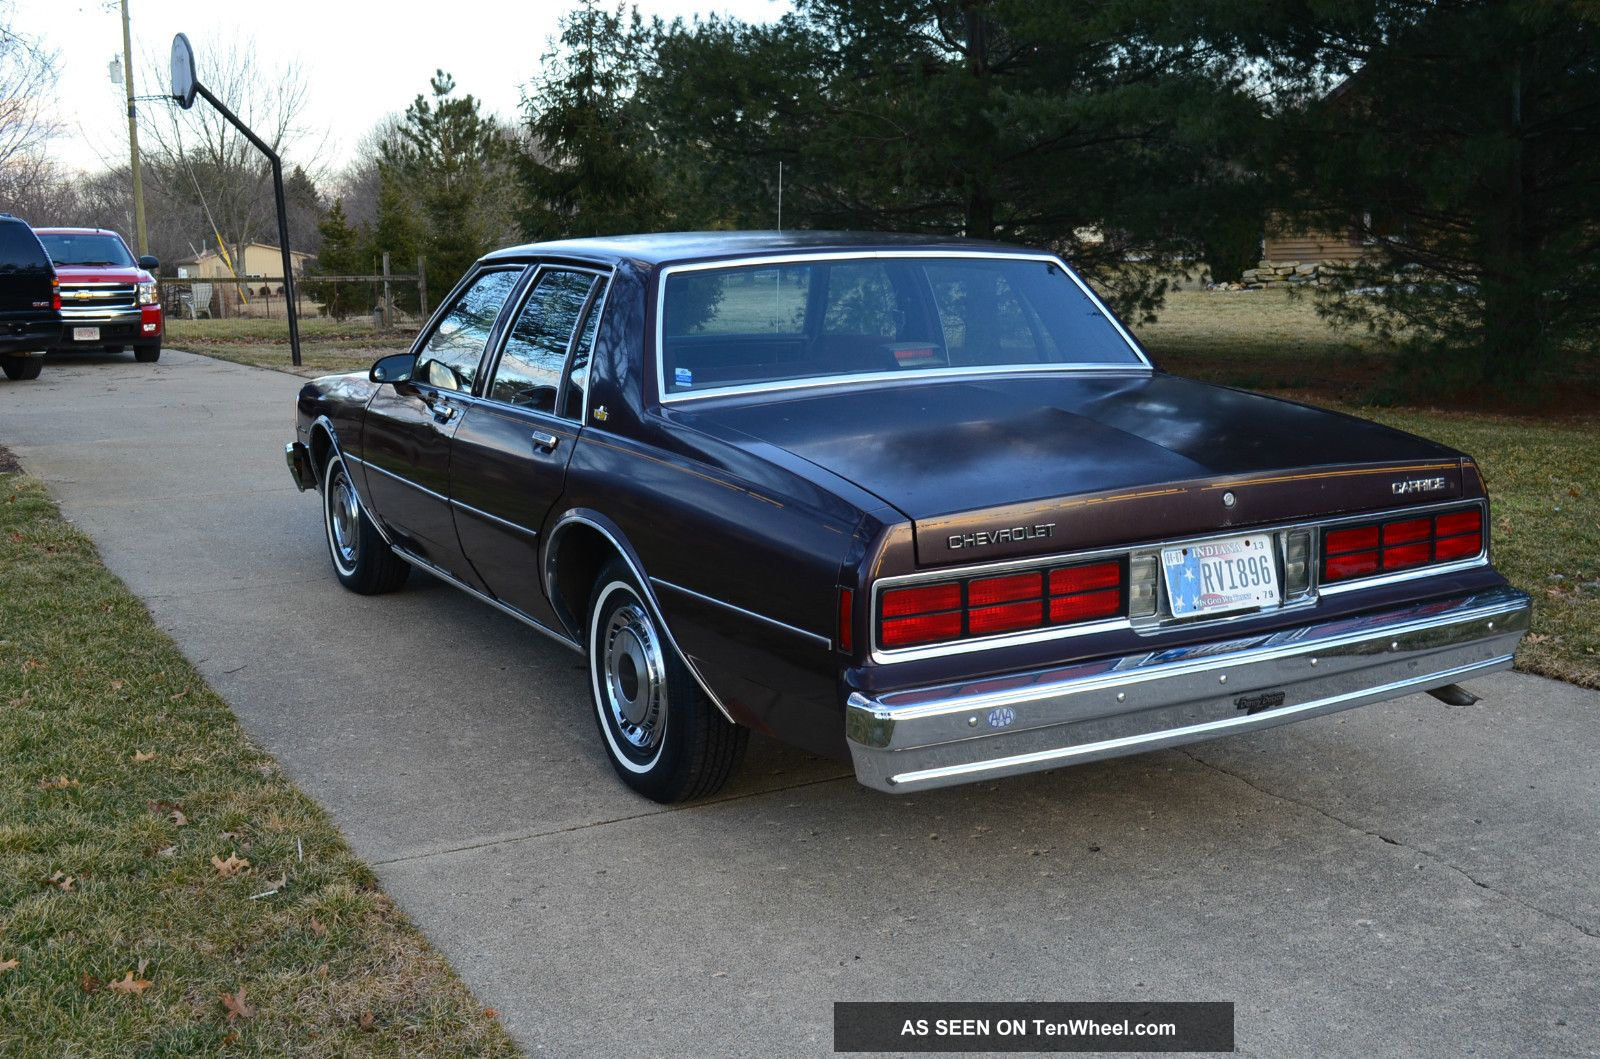 1985 Chevrolet Caprice Classic Sedan 4  Door 4. 3l Caprice photo 5